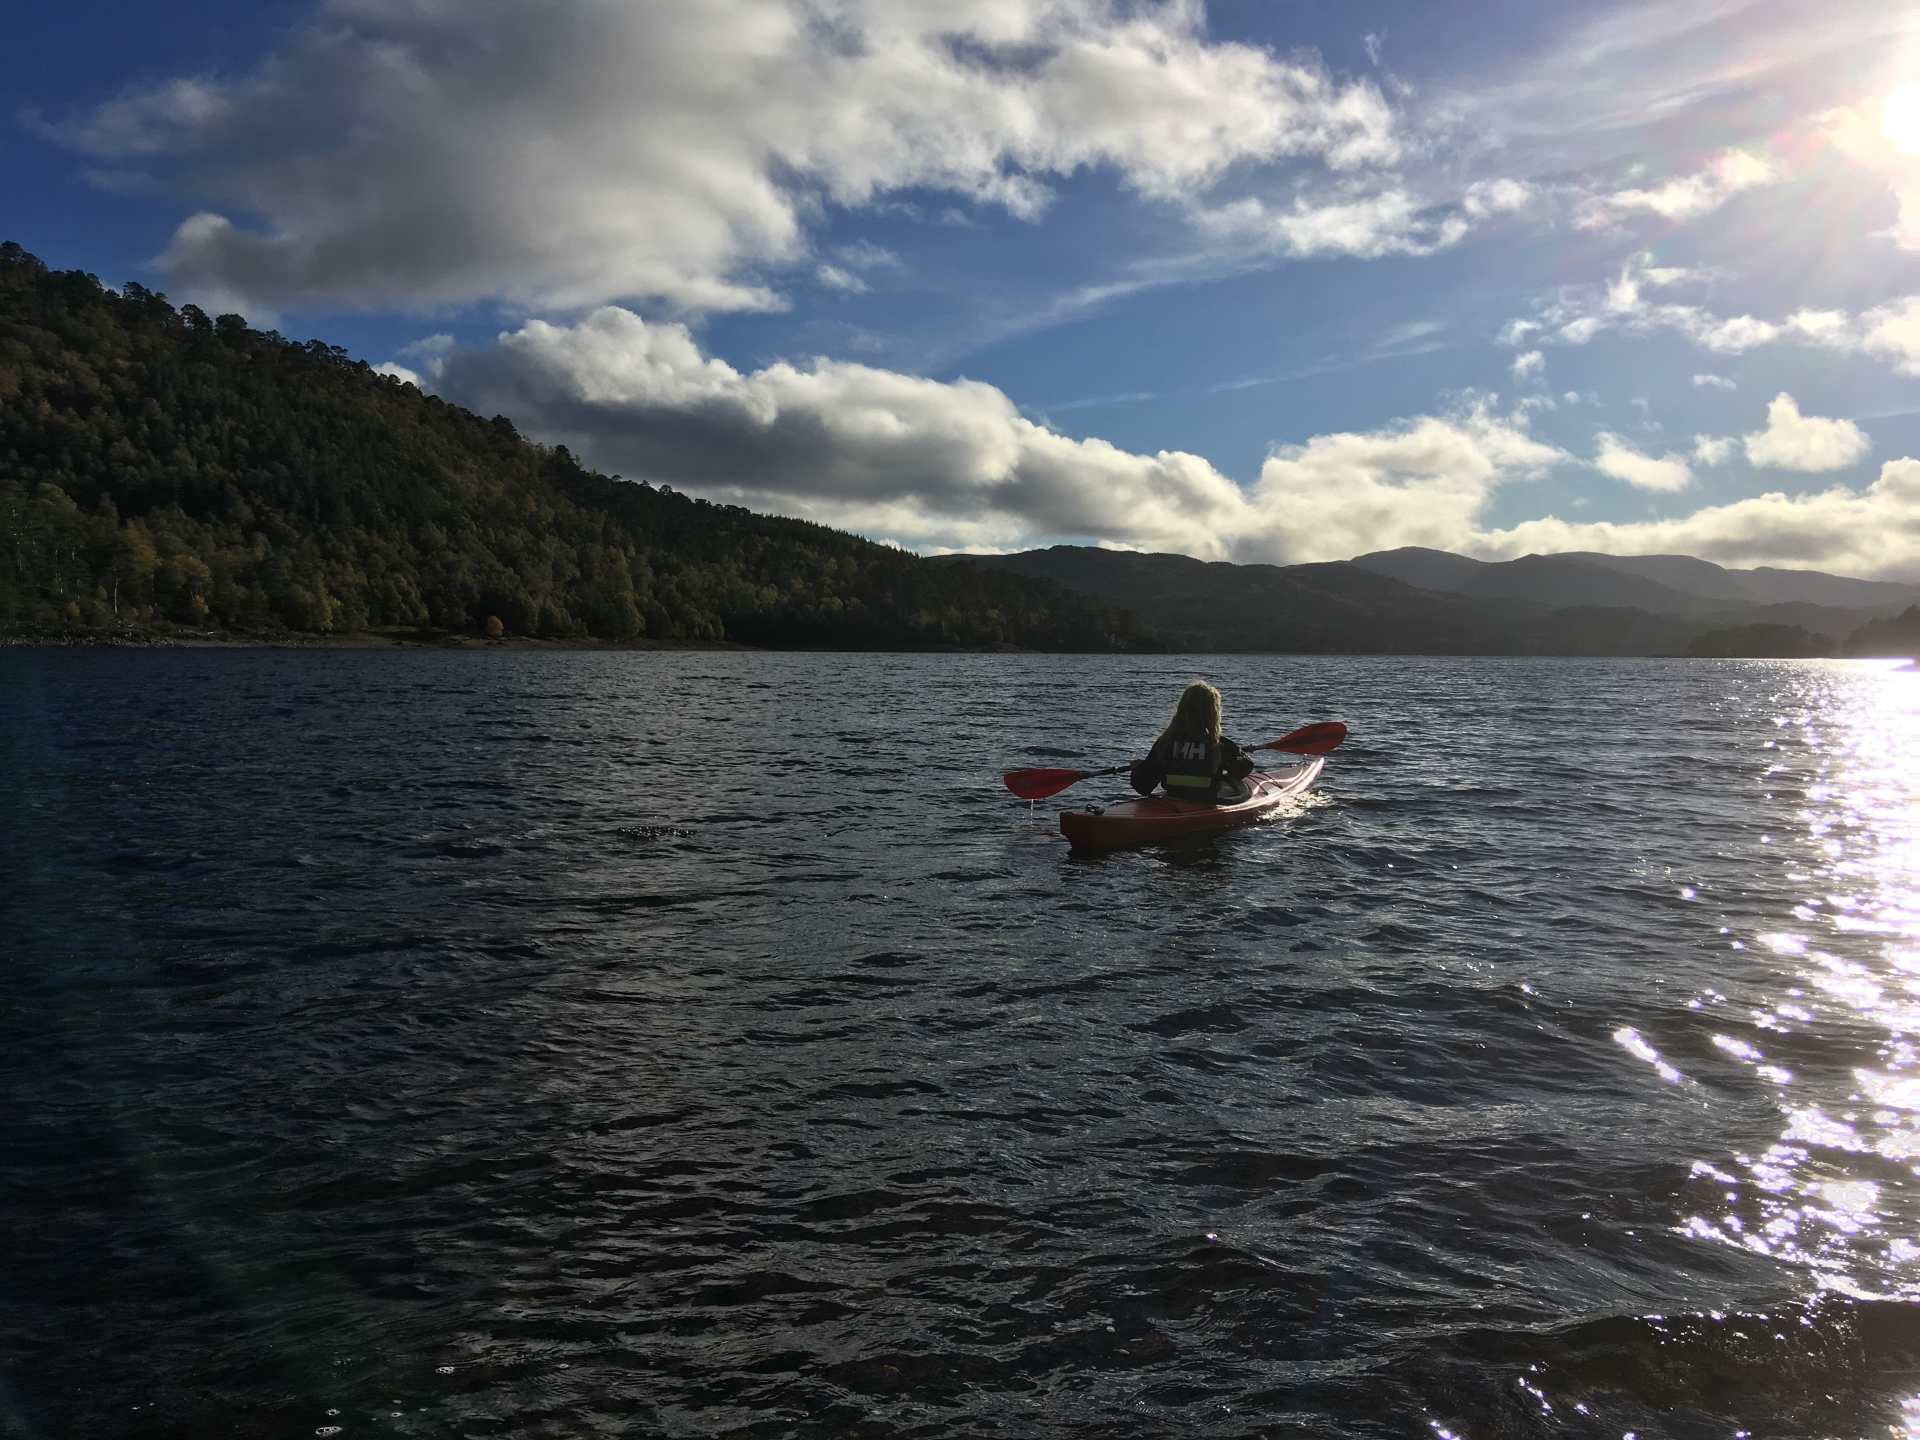 Drovers Day Trip - Kayaking